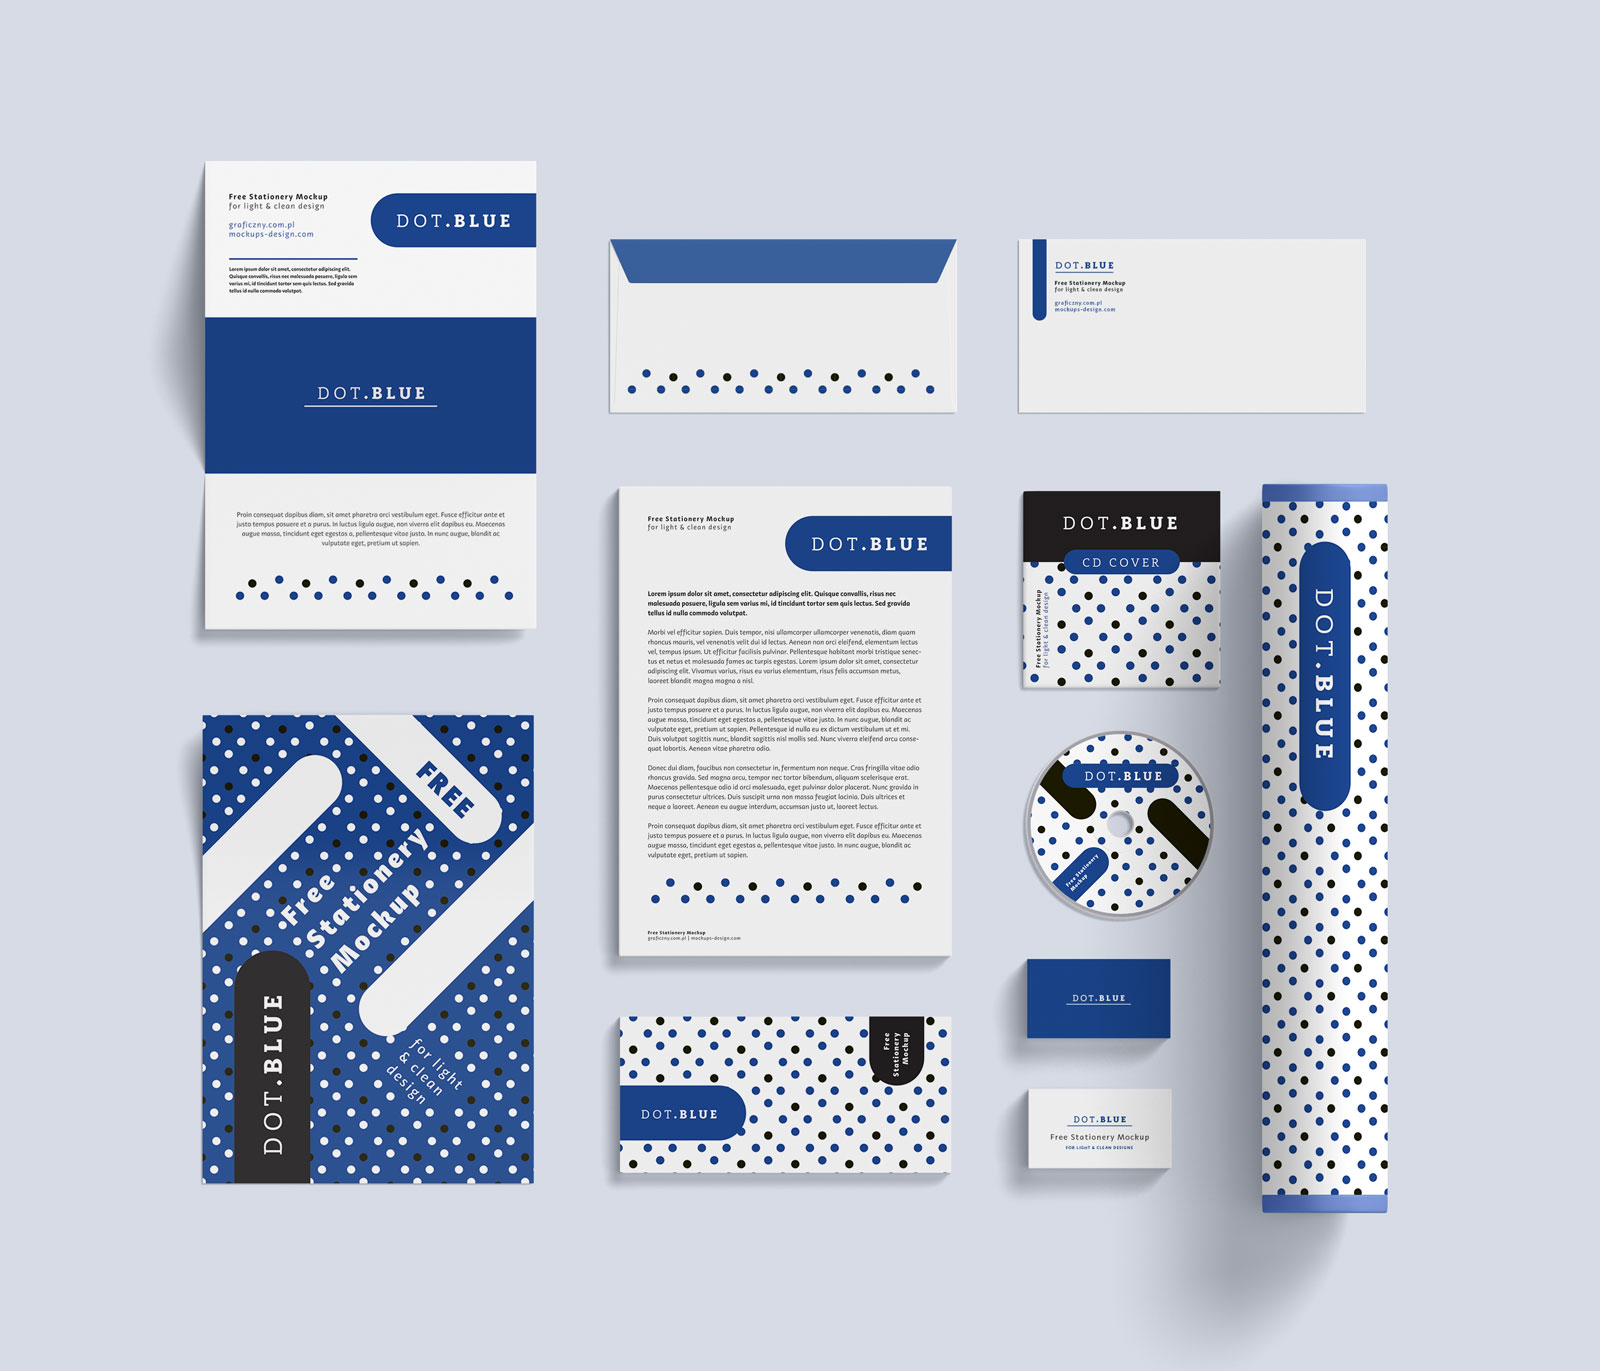 Free-Branding-Corporate-Identity-Mockup-PSD-File-download